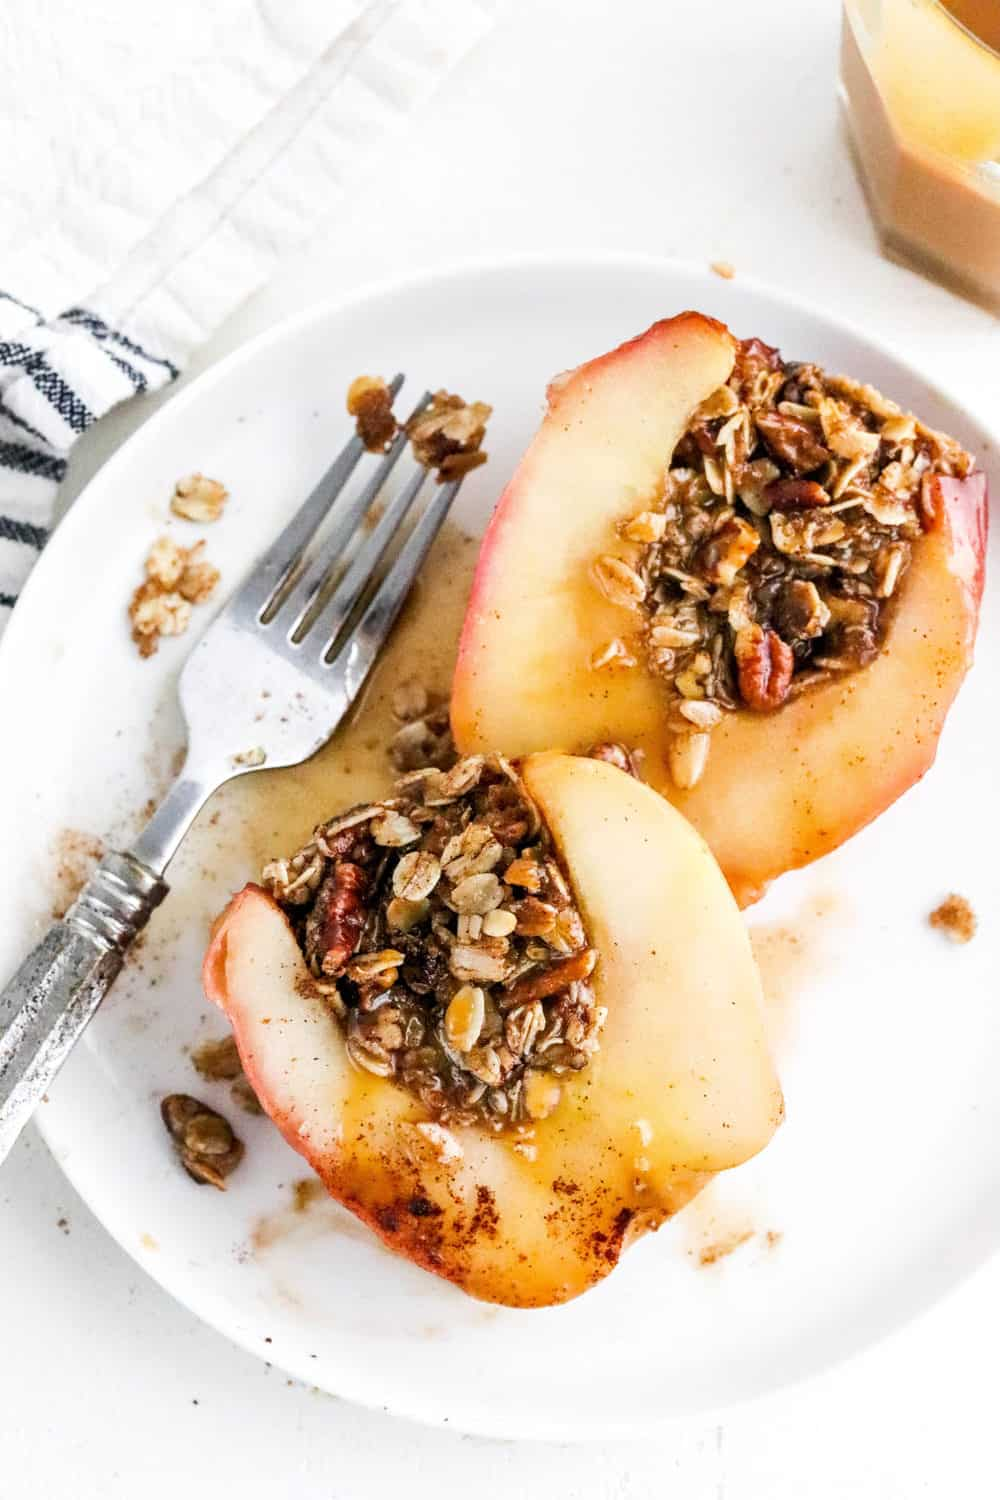 Sliced baked apples filled with oat and nut filling with a fork next to them on a round white plate.